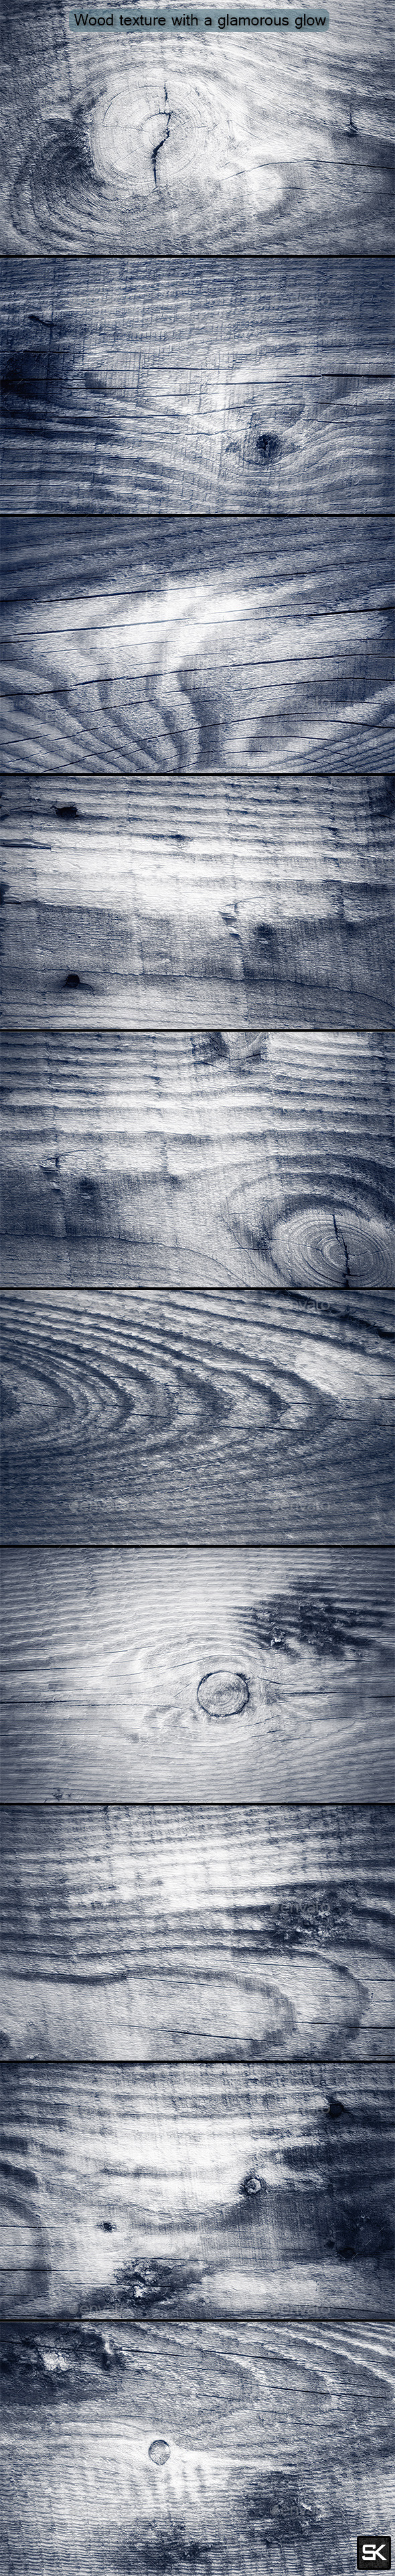 Wood Texture With A Glamorous Glow - Wood Textures